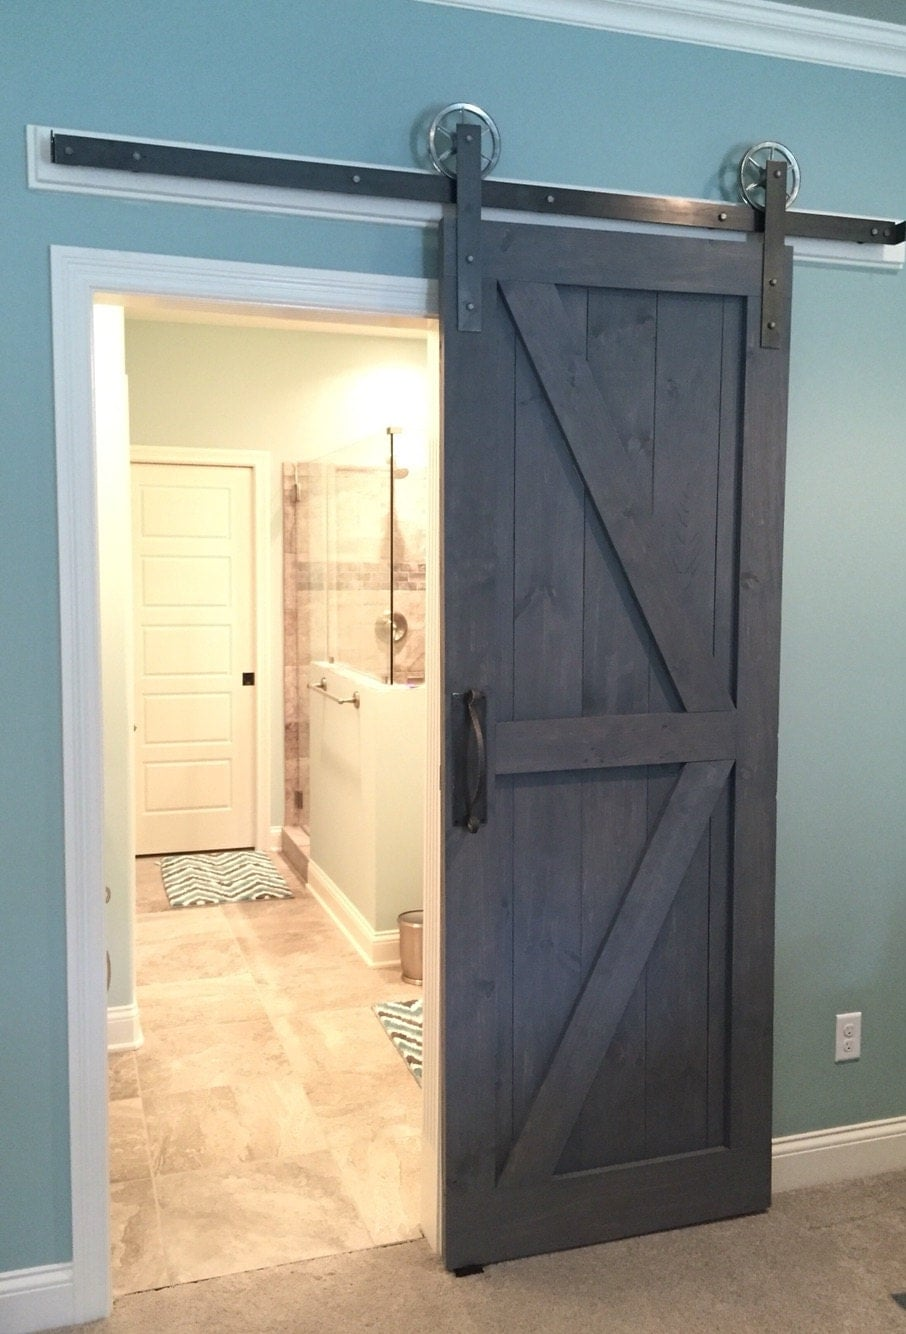 Custom Handmade Rustic Barn Door. Parker Garage Door Repair. Wall Garage Storage Systems. Spring Door Closer. Wood Doors For Sale. Garage Builders Alabama. Costco Garage Storage Systems. Kayak Garage Racks. Garage Door Repair Woodbury Mn